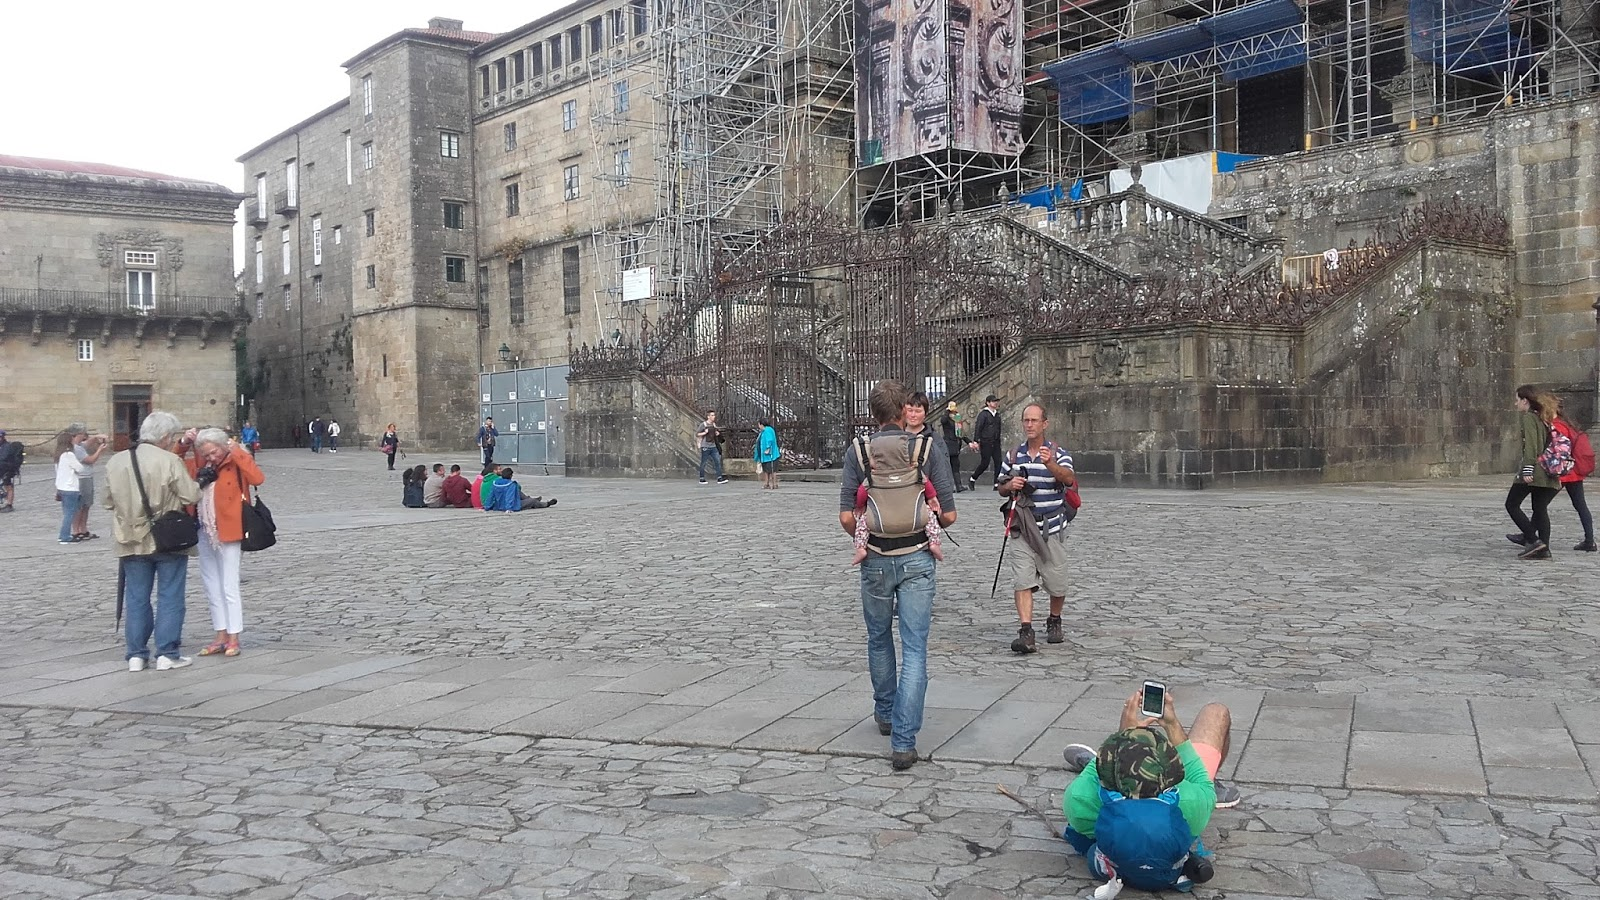 santiago homework Experience santiago your way by customizing your study abroad experience through our open campus program skip homework, project work, presentations, and.